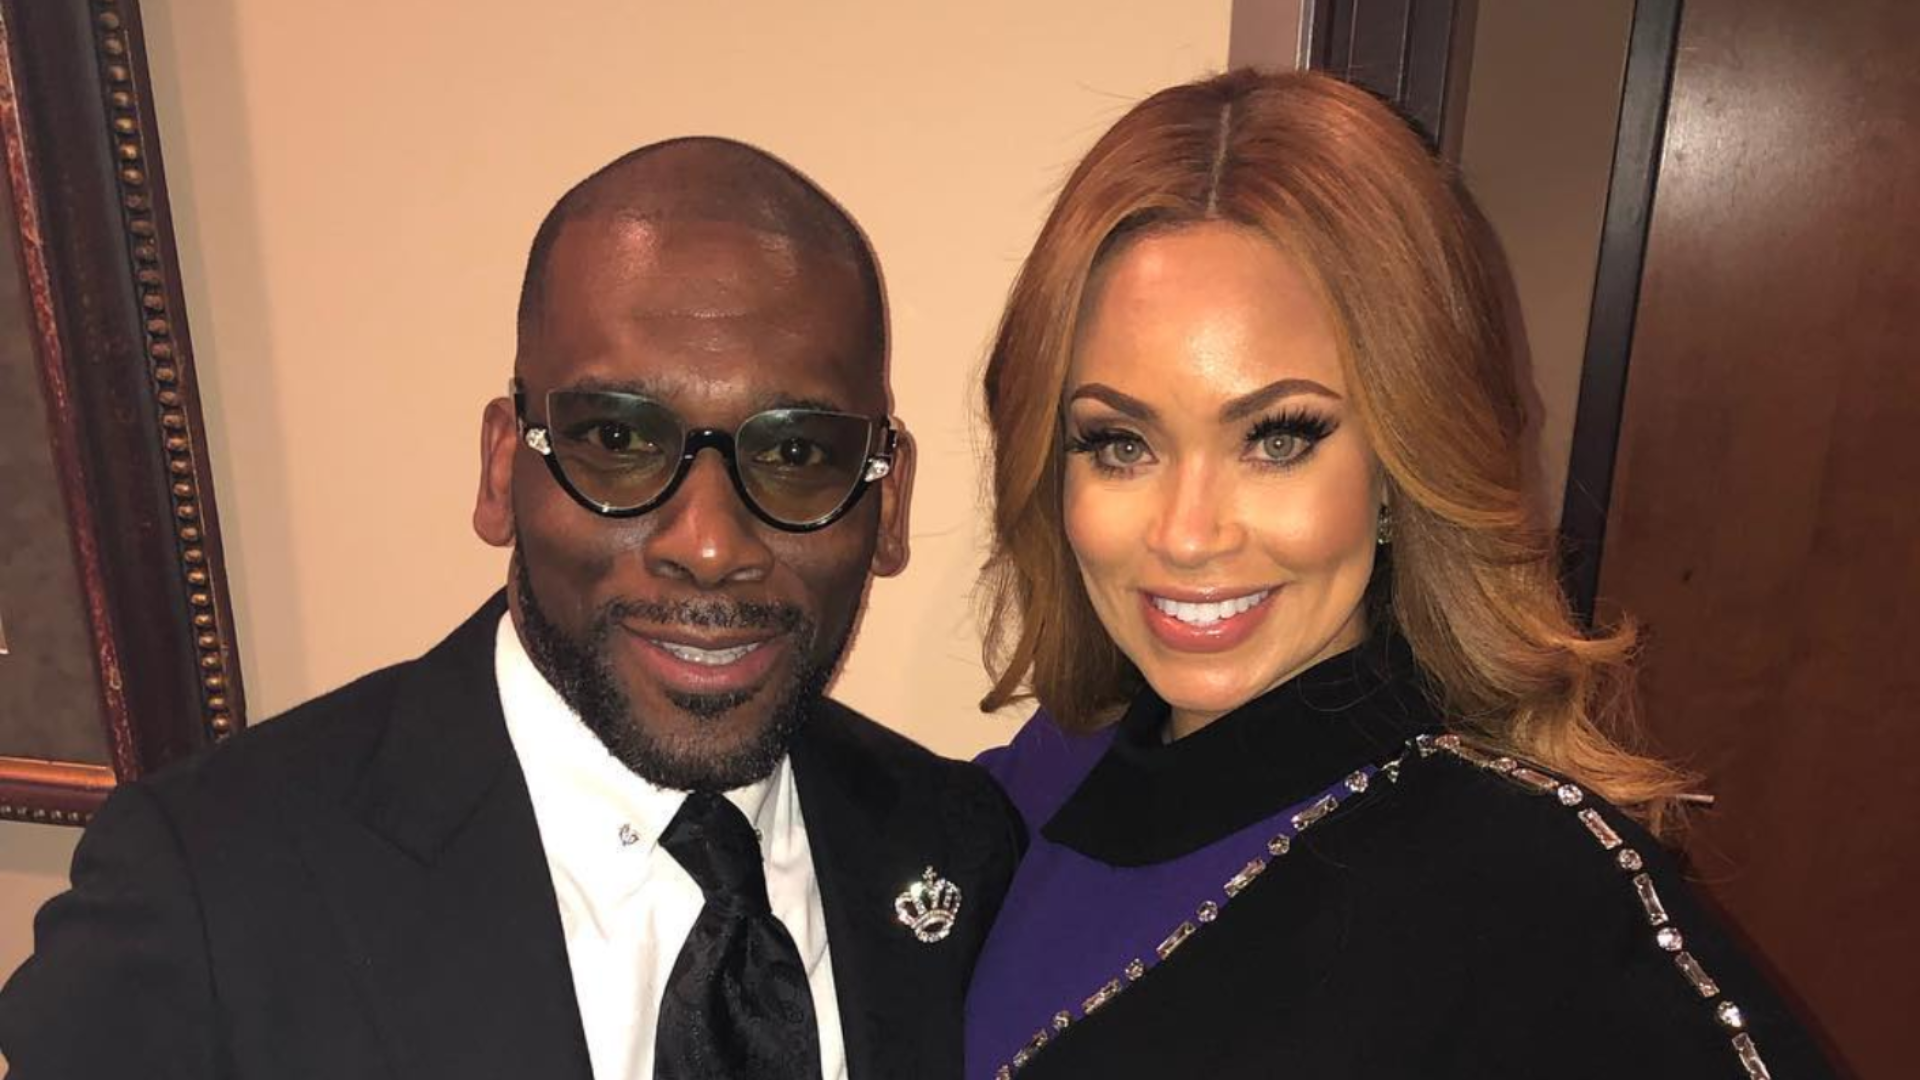 'Real Housewives of Potomac' Star Gizelle Bryant Confirms She Is Dating Ex-Husband Jamal H. Bryant Again